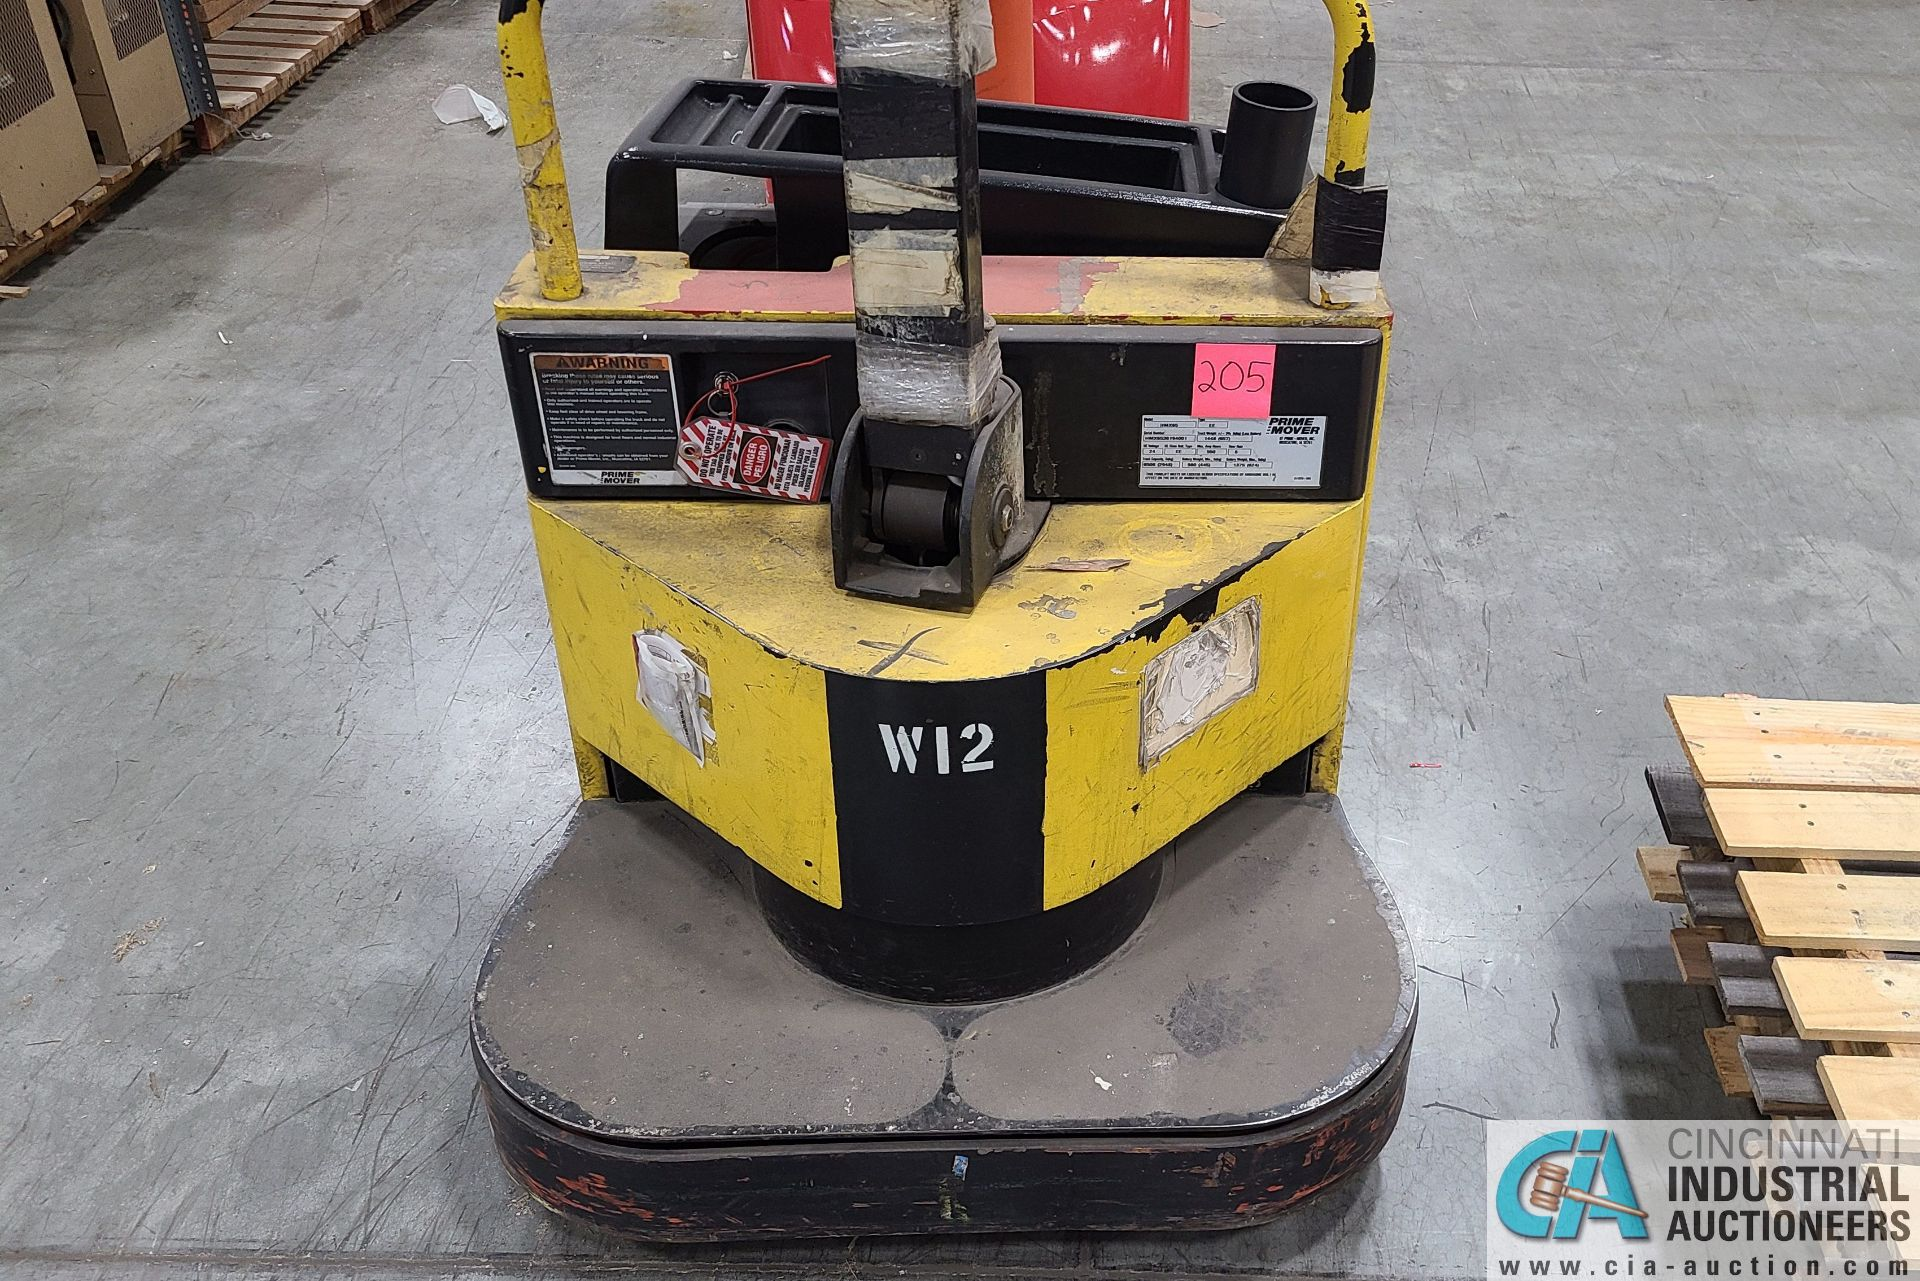 PRIME MODEL HMX65 ELECTRIC PALLET TRUCK; S/N HMX6536194001, W/ BATTERY, 4917 HOURS (2570 ORCHARD - Image 3 of 4